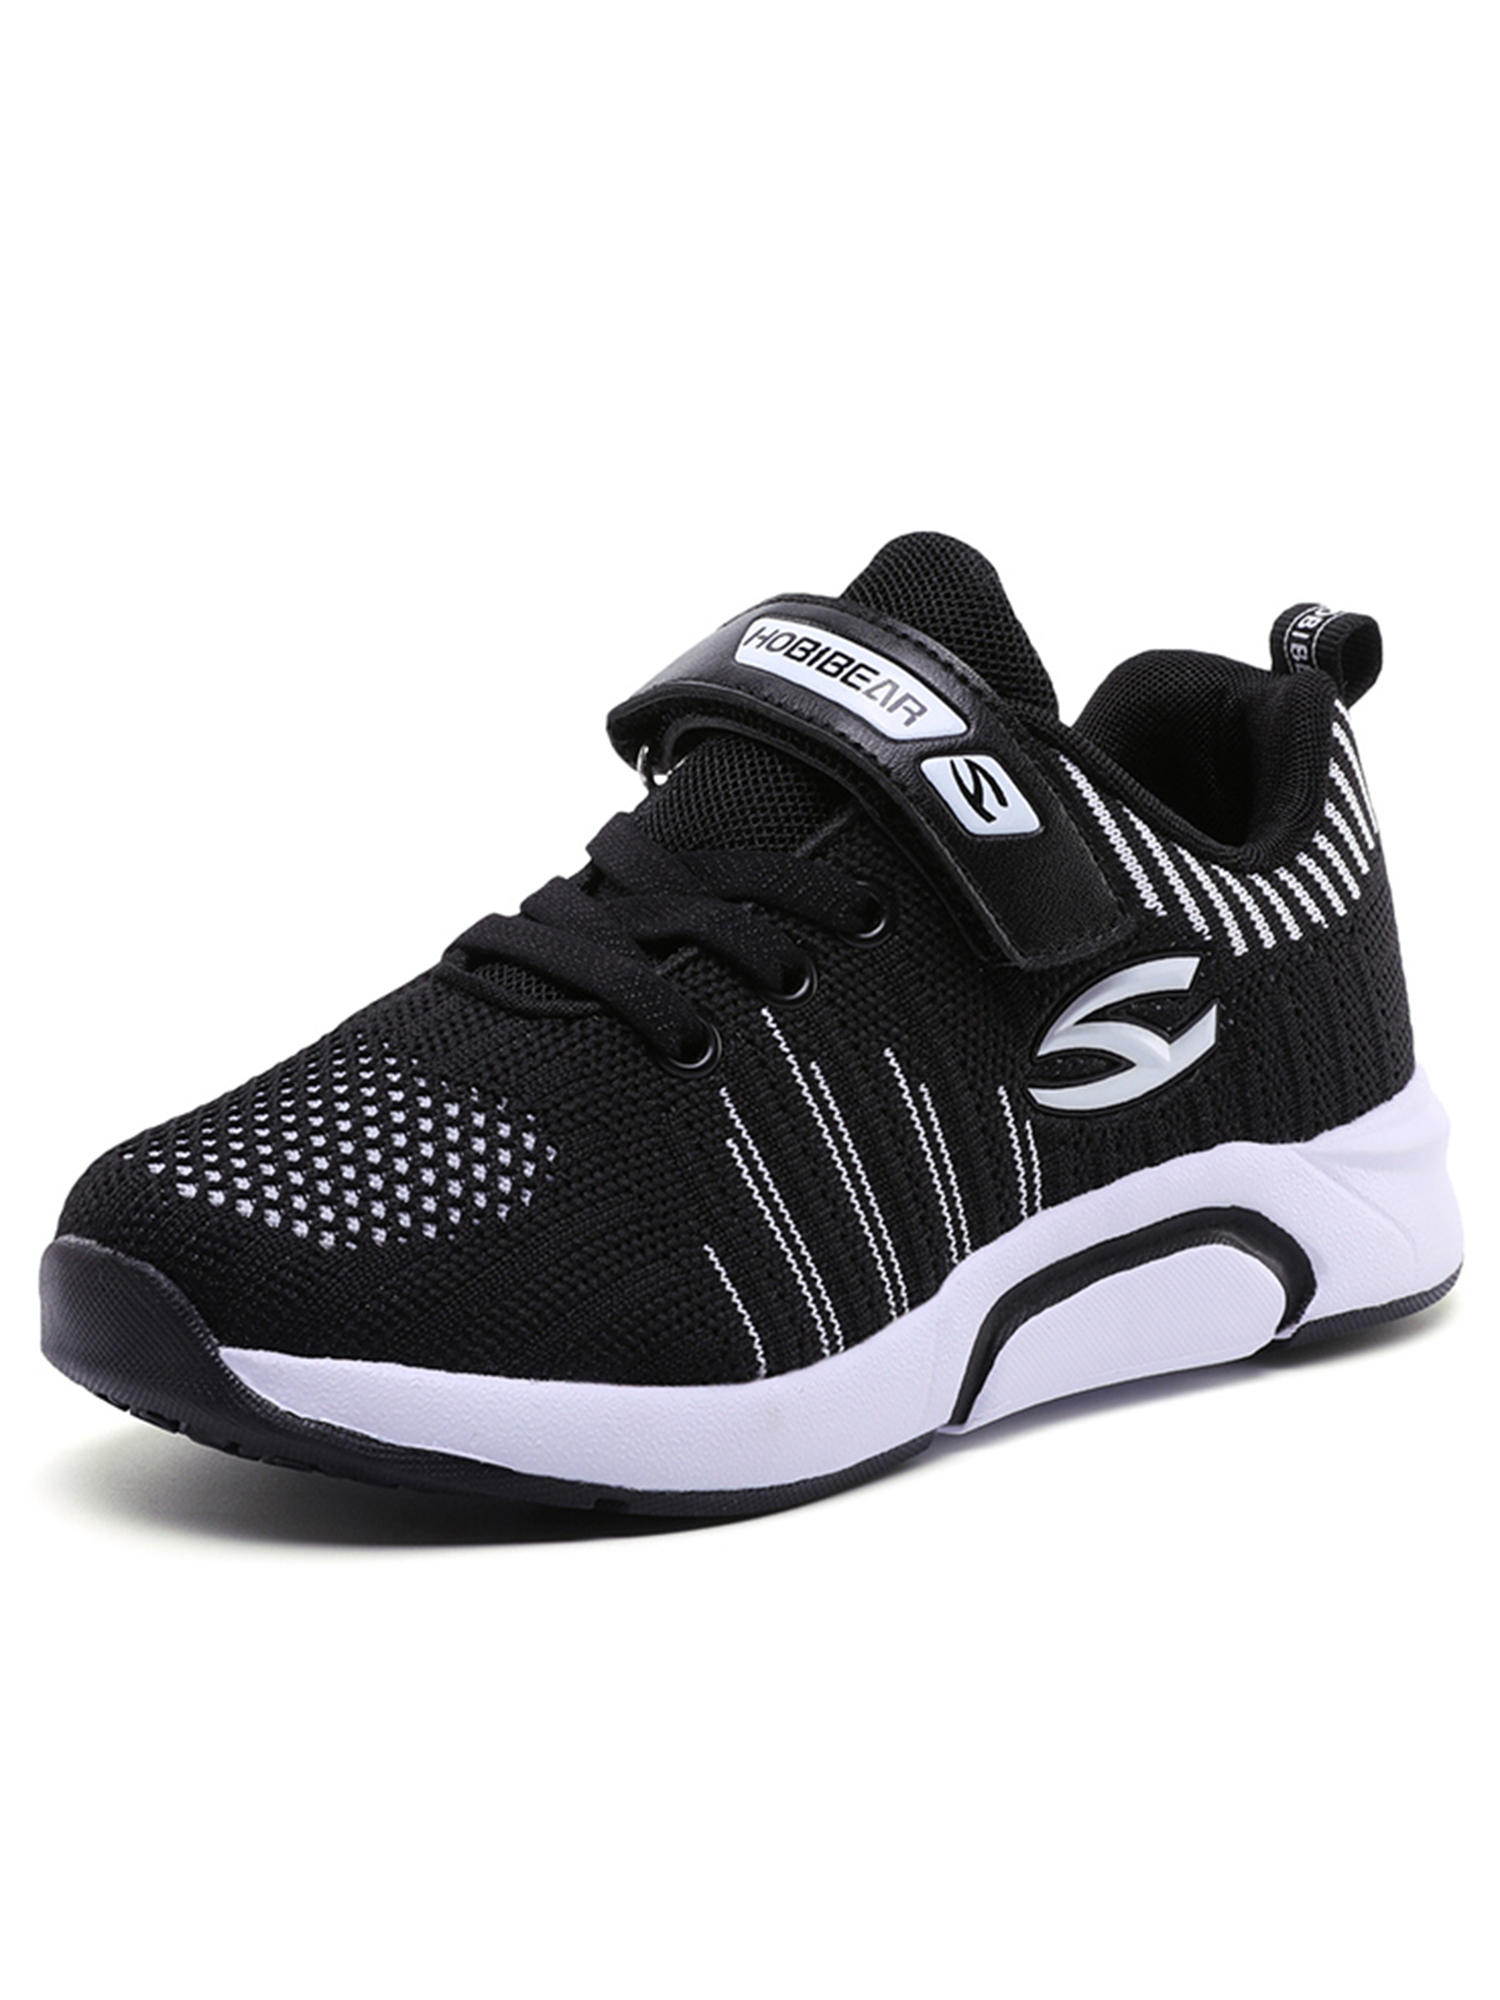 Polwer Baby Breathable Shoes-Kids Mesh Lightweight Infant Boy Girl Soft Sneakers